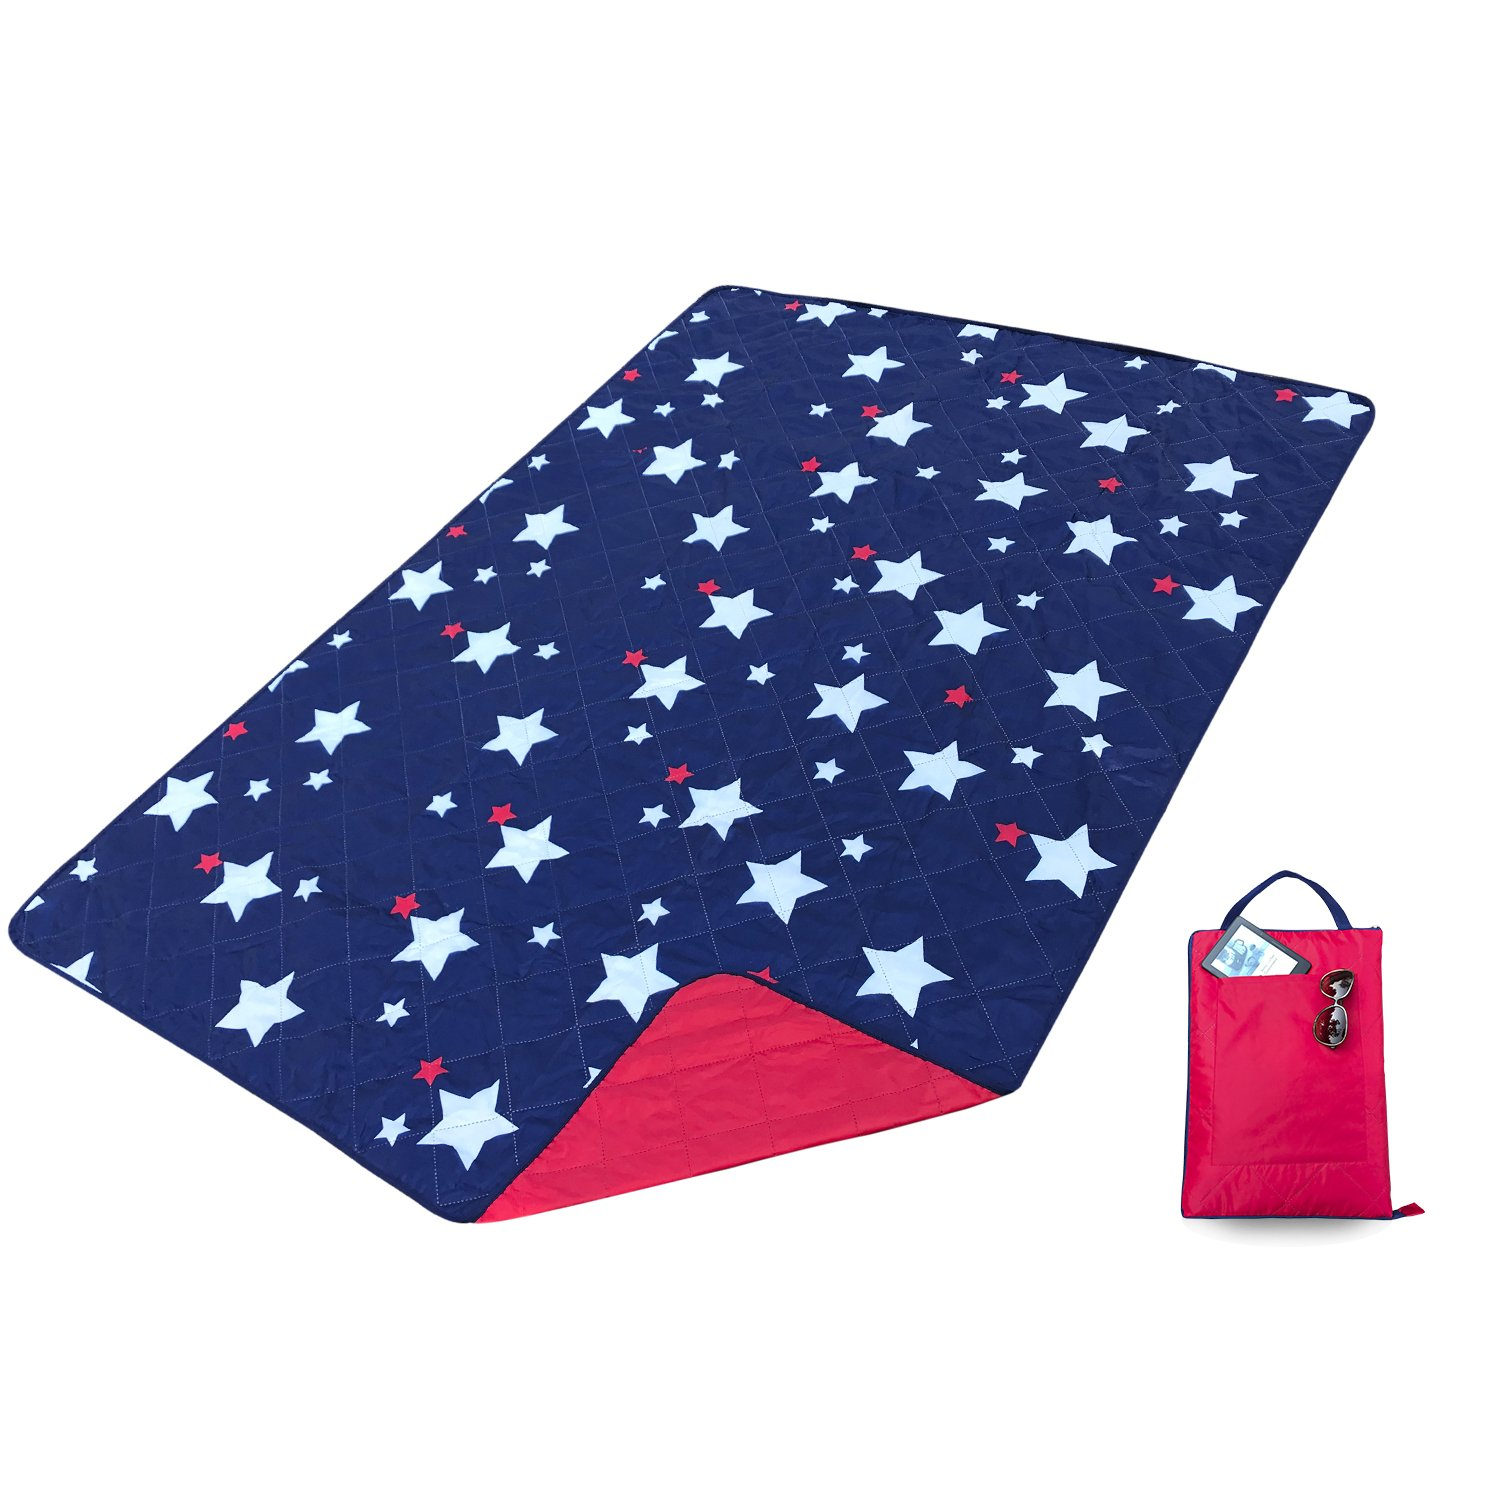 Kute 'n' Koo Outdoor Picnic Blanket Tote, Super Easy to Fold, Machine Washable, Waterproof Backing Fraying-Free Ultrasonic Sewing Lightweight Camping Blanket, 55'' x 79'' (Stars)